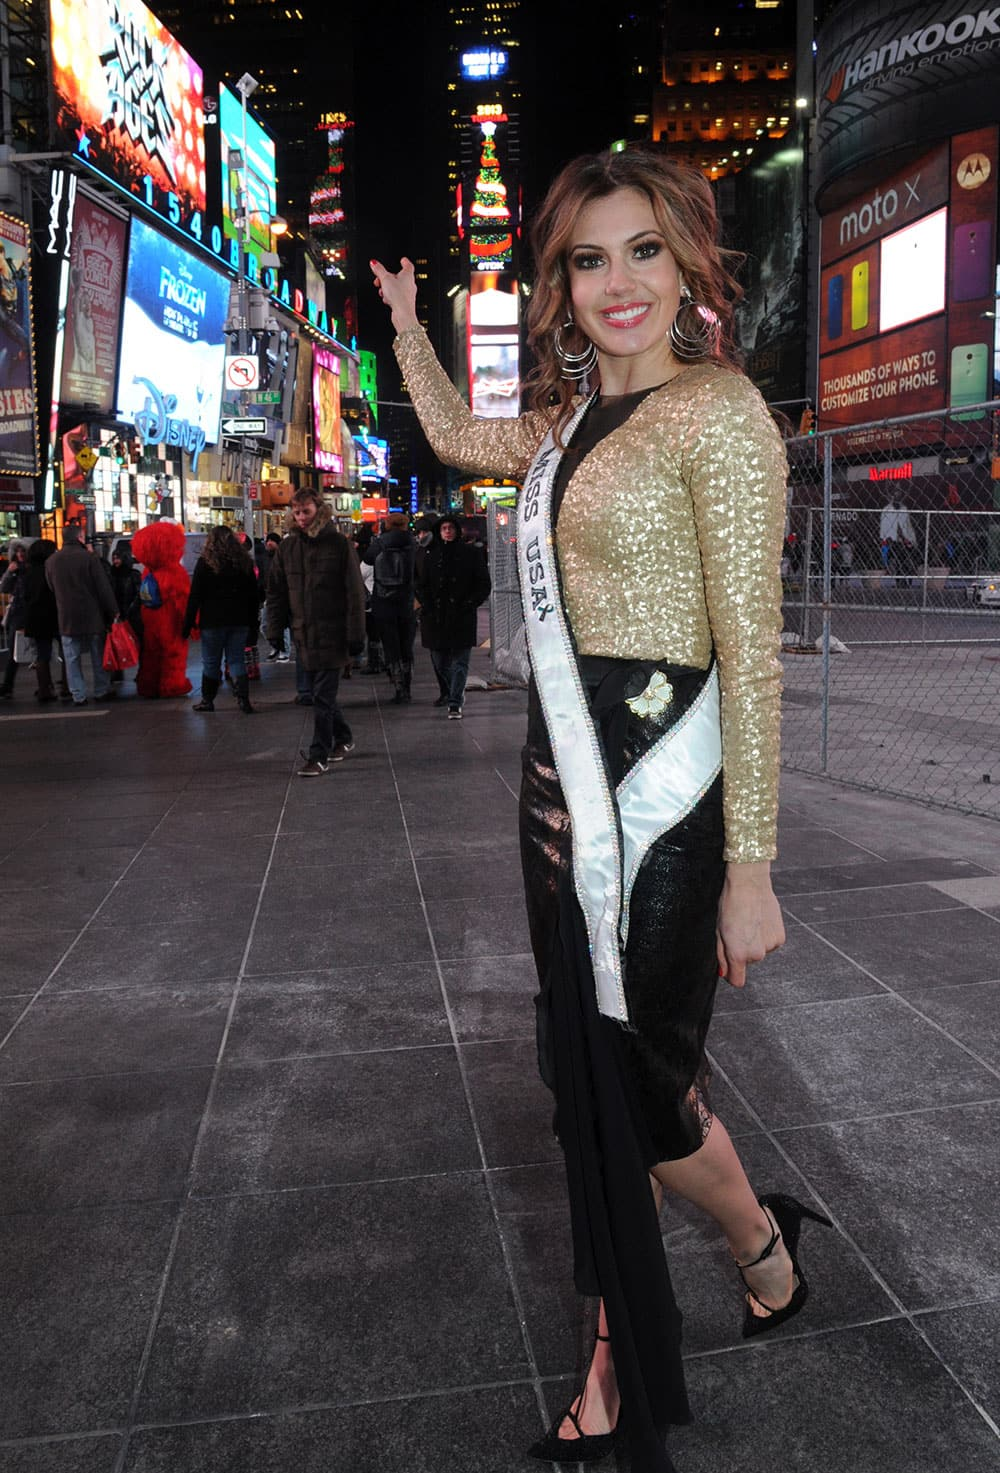 Erin Brady, Miss USA 2013, points to the 150-foot tall digital Christmas tree atop One Times Square on the Toshiba Vision and TDK screens, in New York.